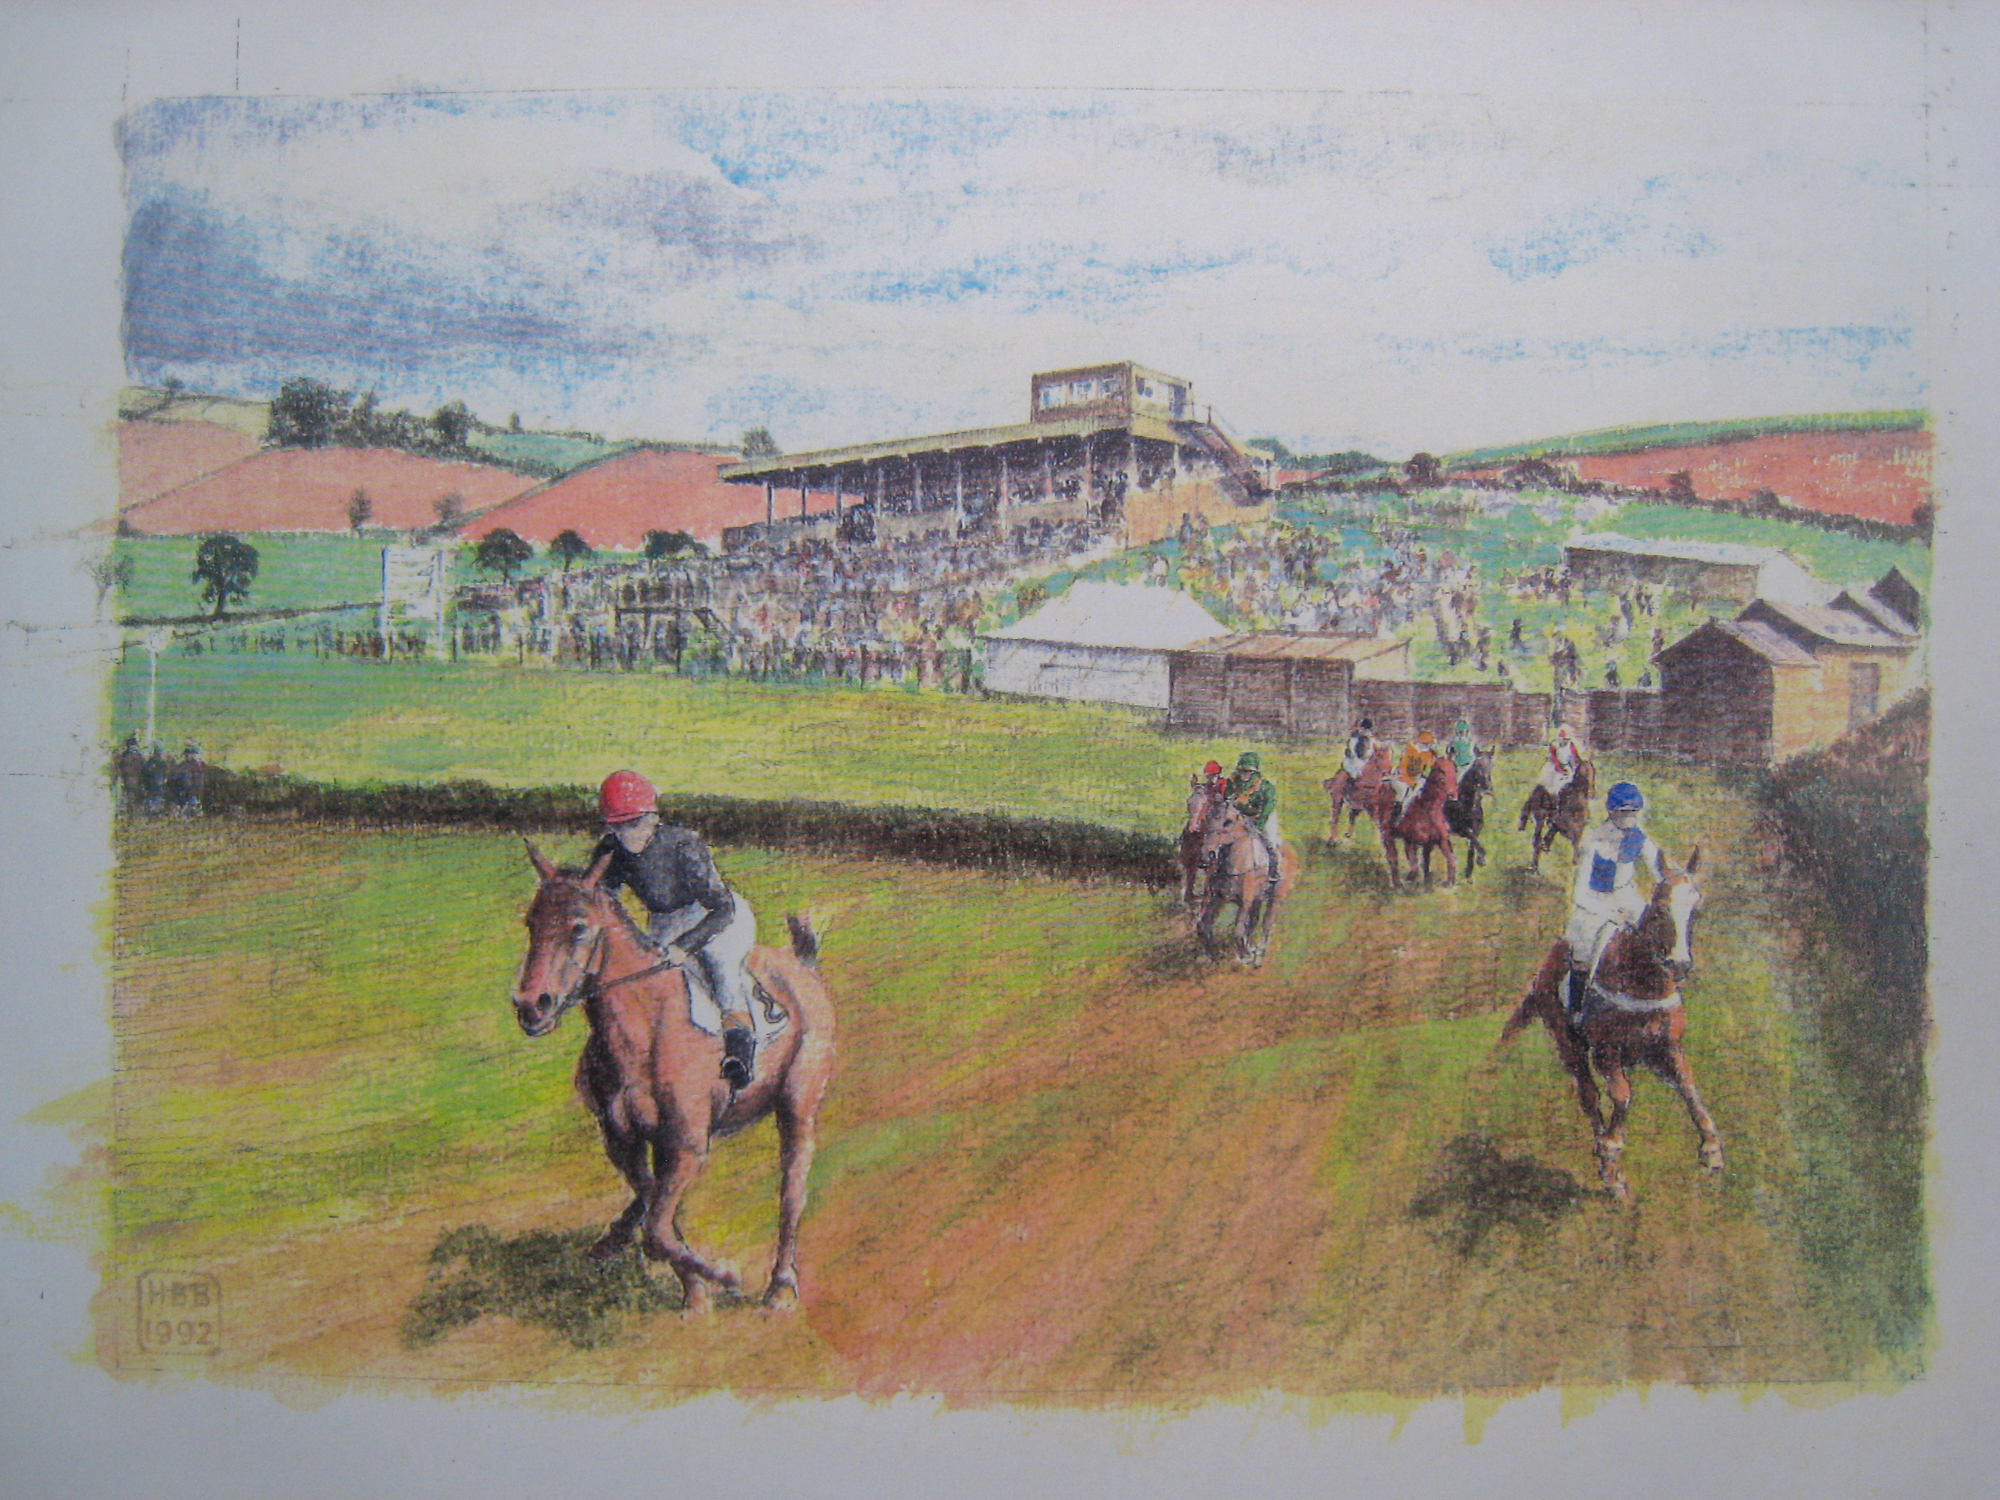 OB 19 Buckfastleigh Racecourse final